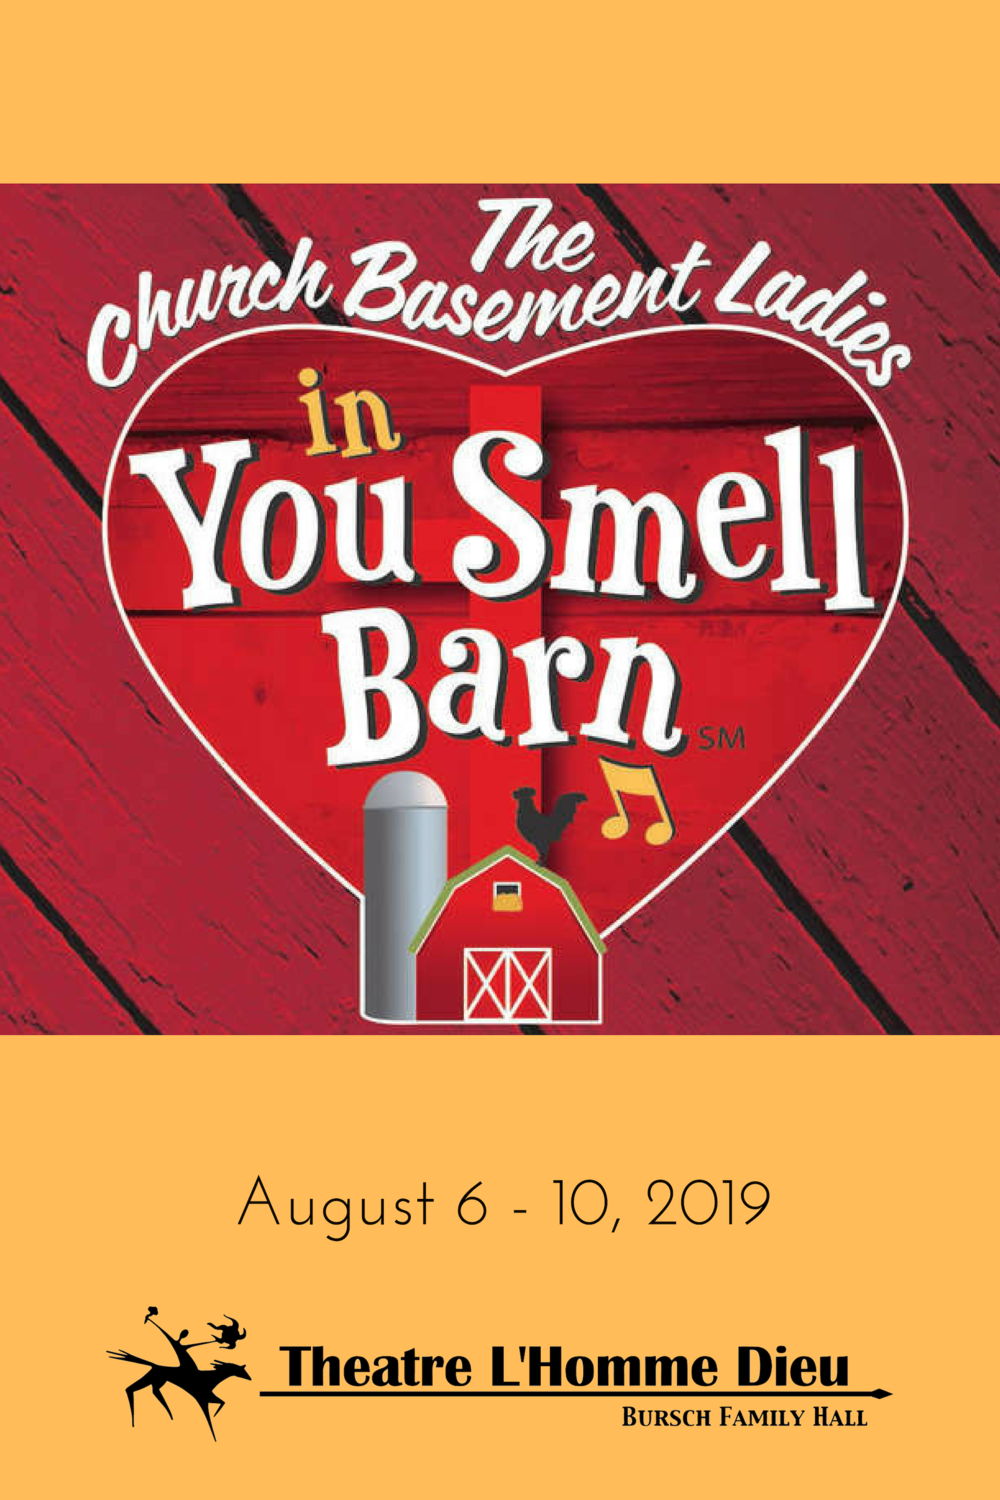 2019 Church Basement Ladies Poster.png